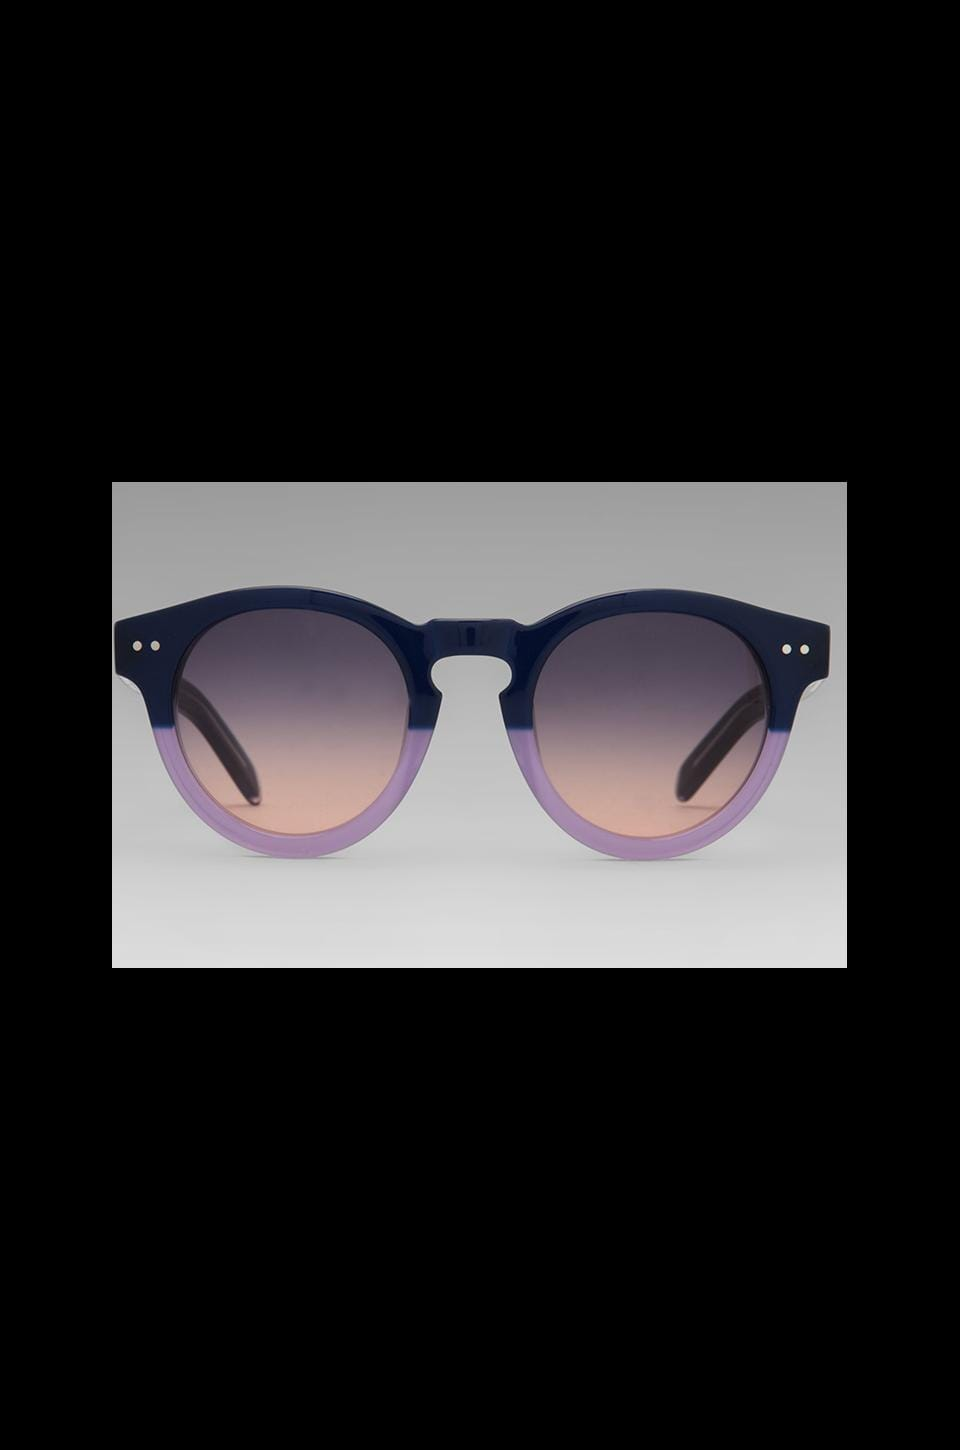 House of Harlow 1960 House of Harlow Carmen Sunglasses in Lavender